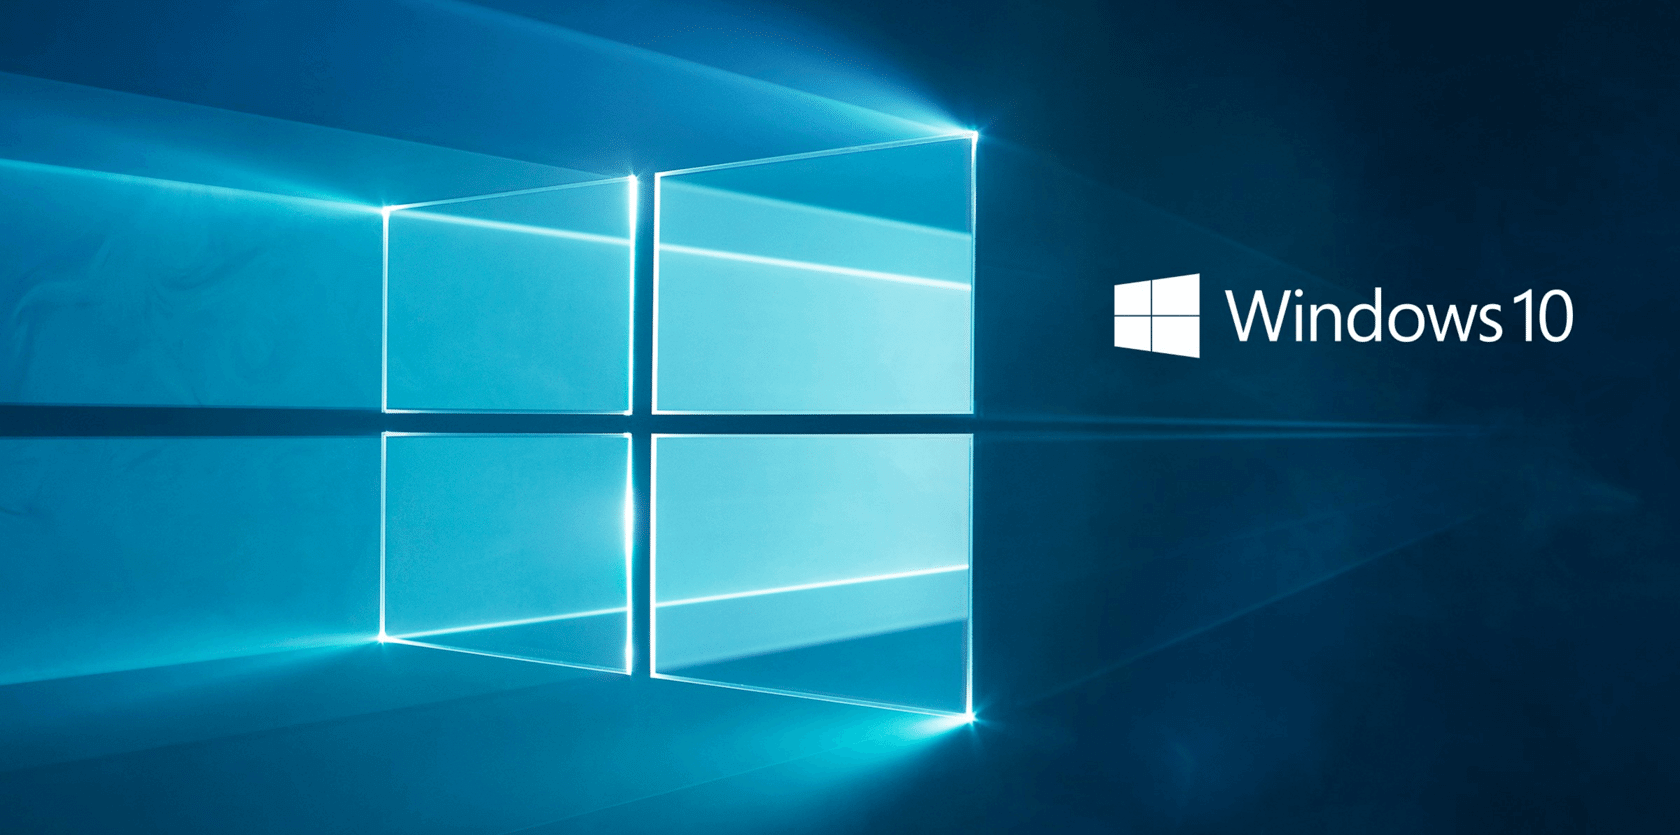 windows 10 logo tekst